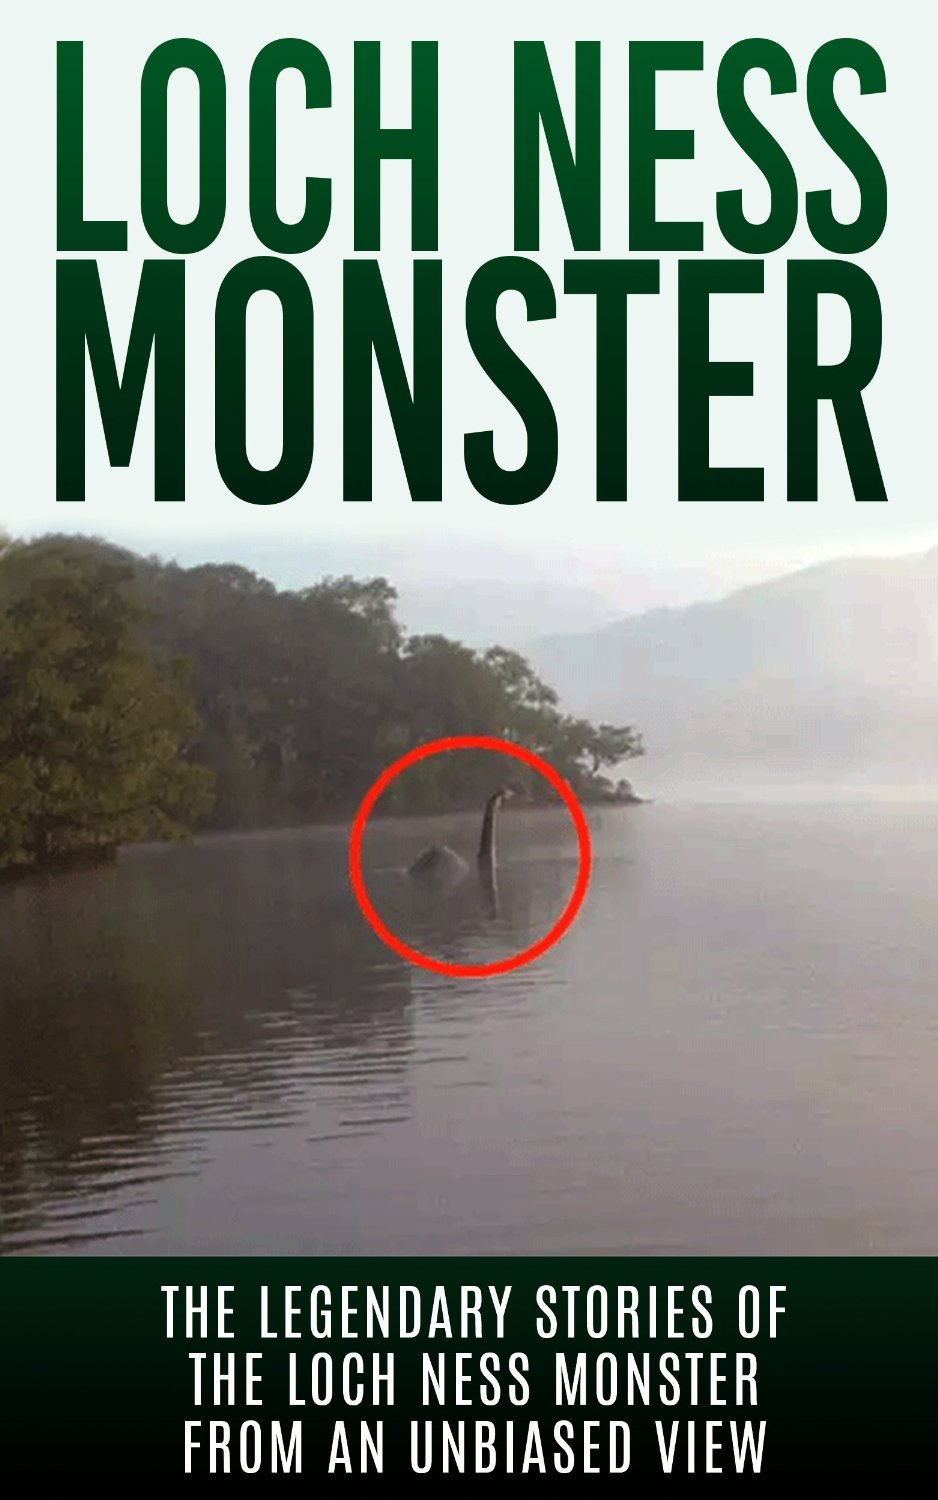 Loch monster ness paper research